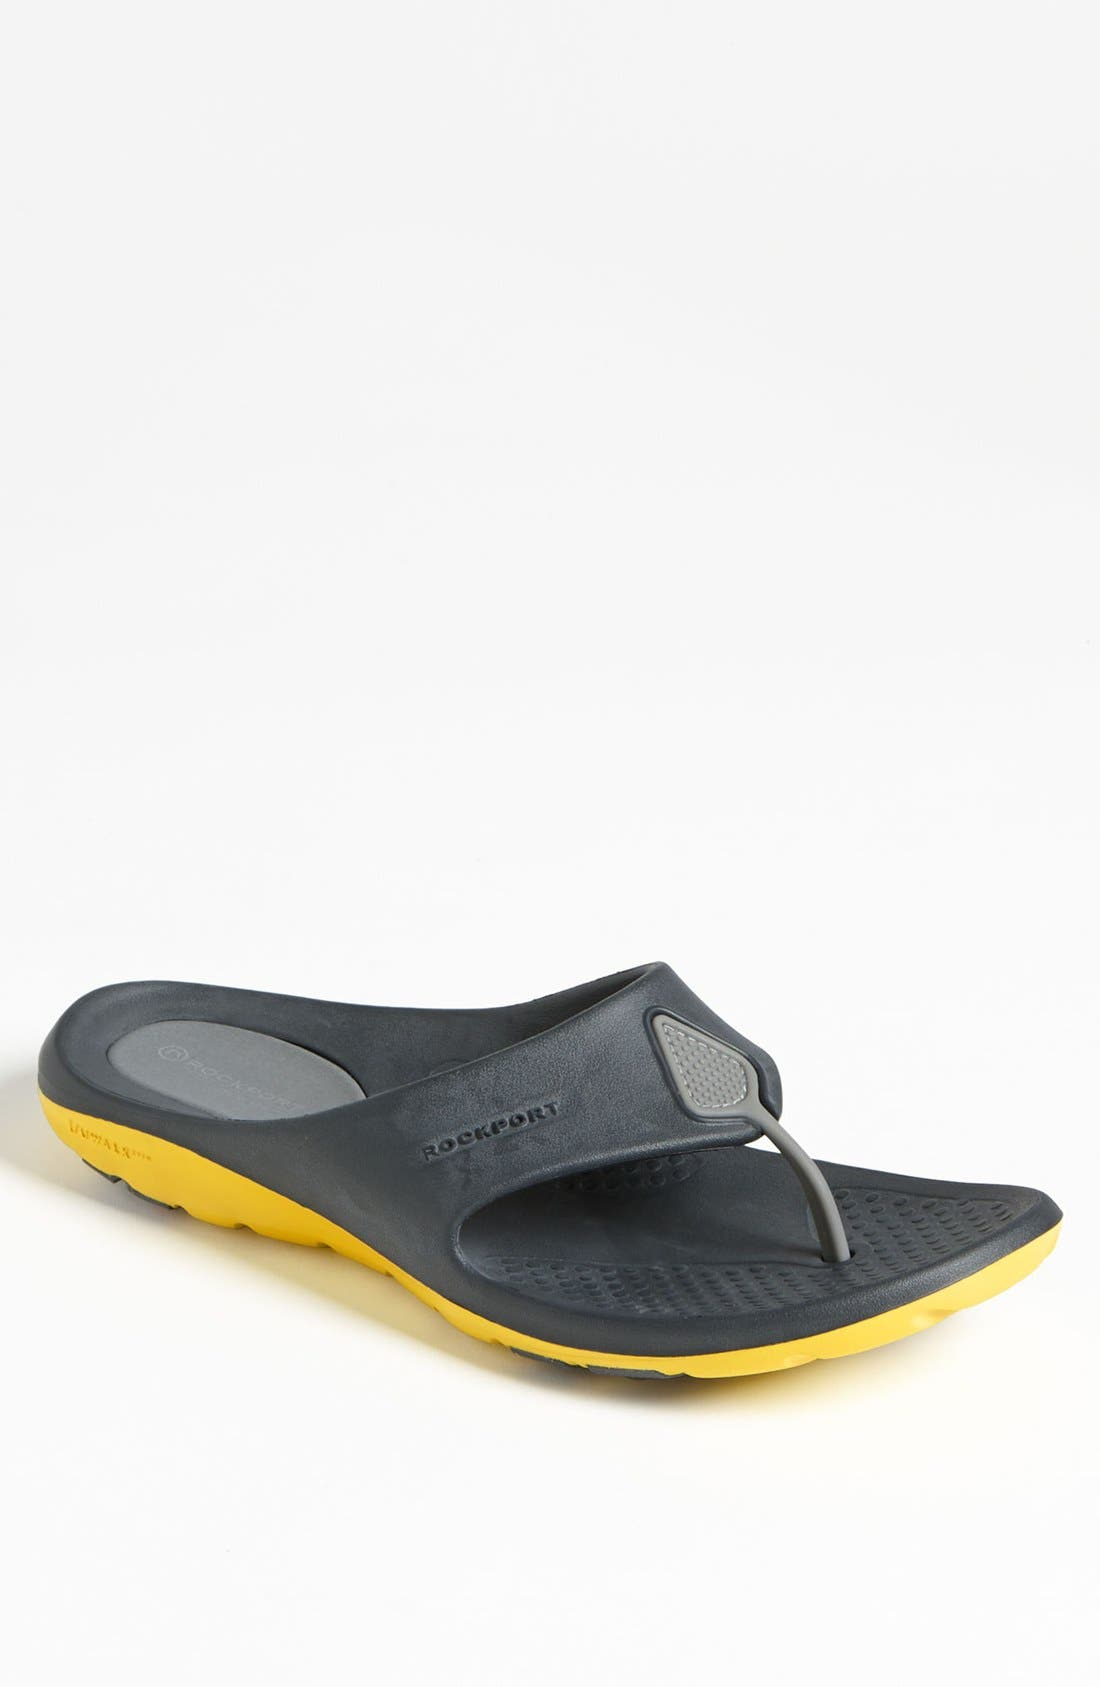 Main Image - Rockport 'TruWalk - Zero' Flip Flop (Men)